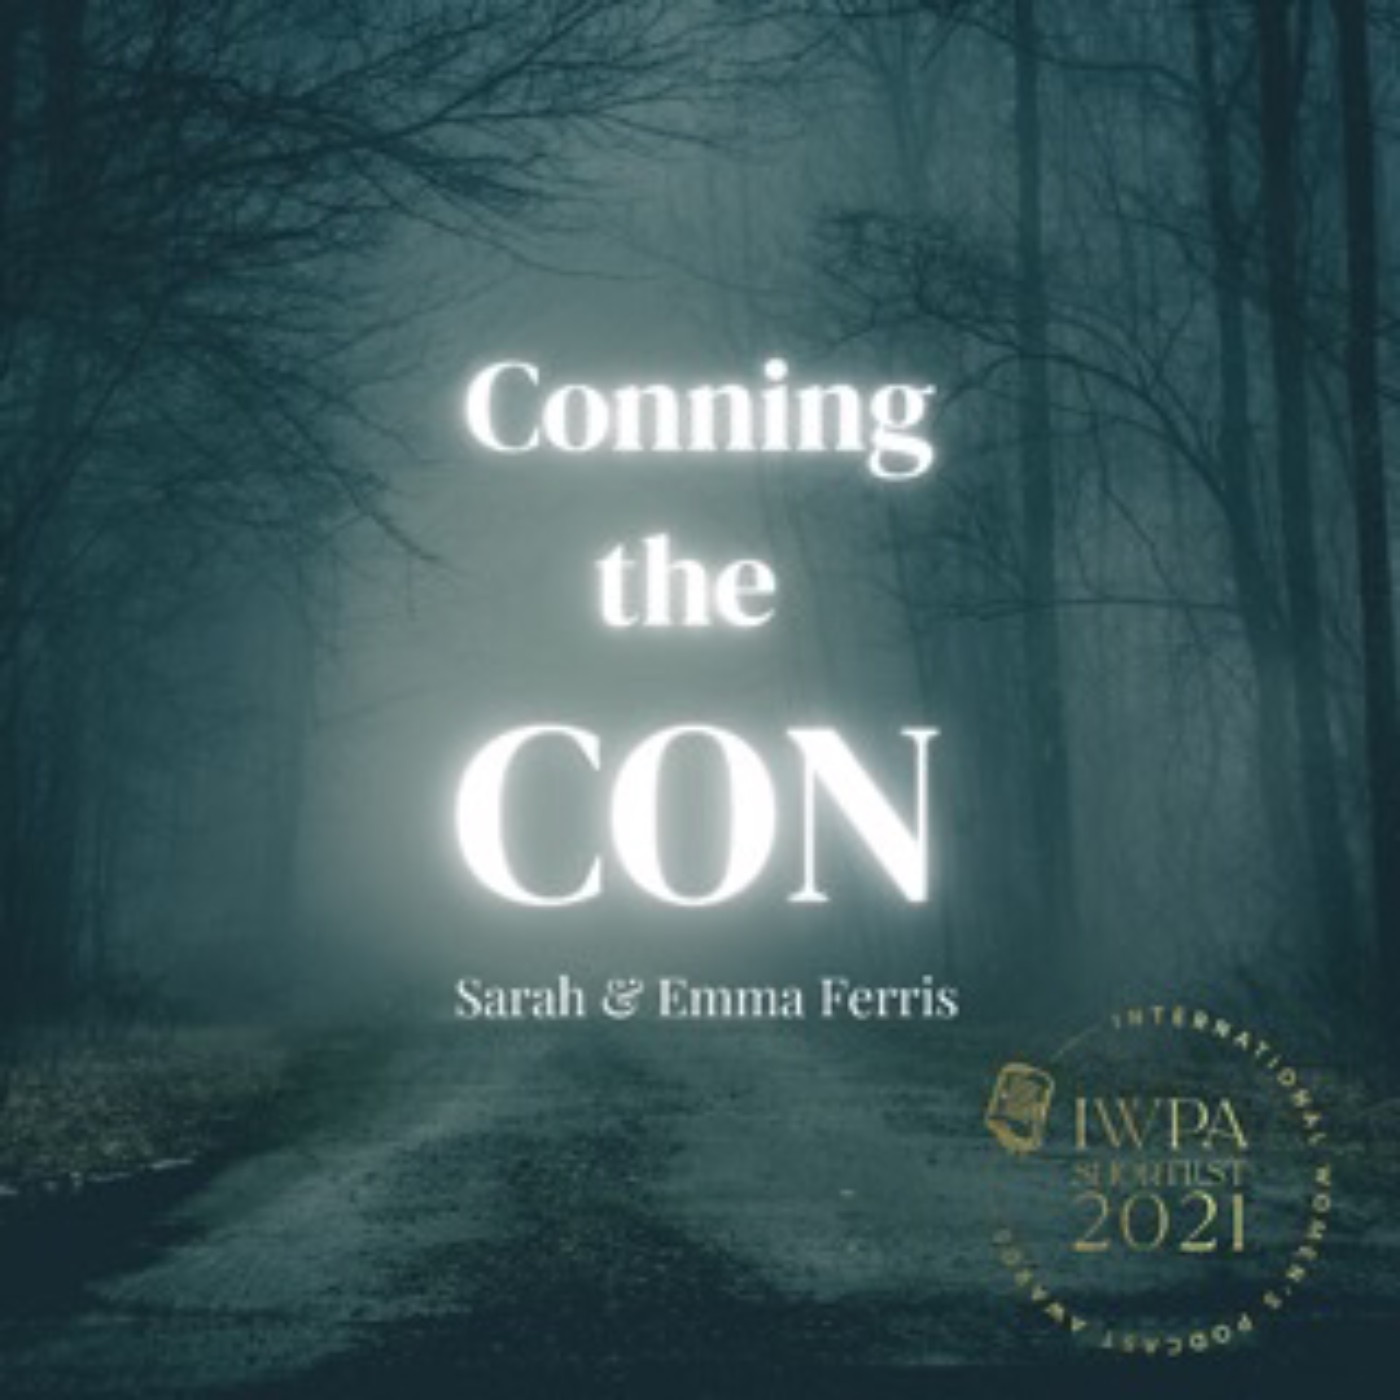 Introducing Conning the Con